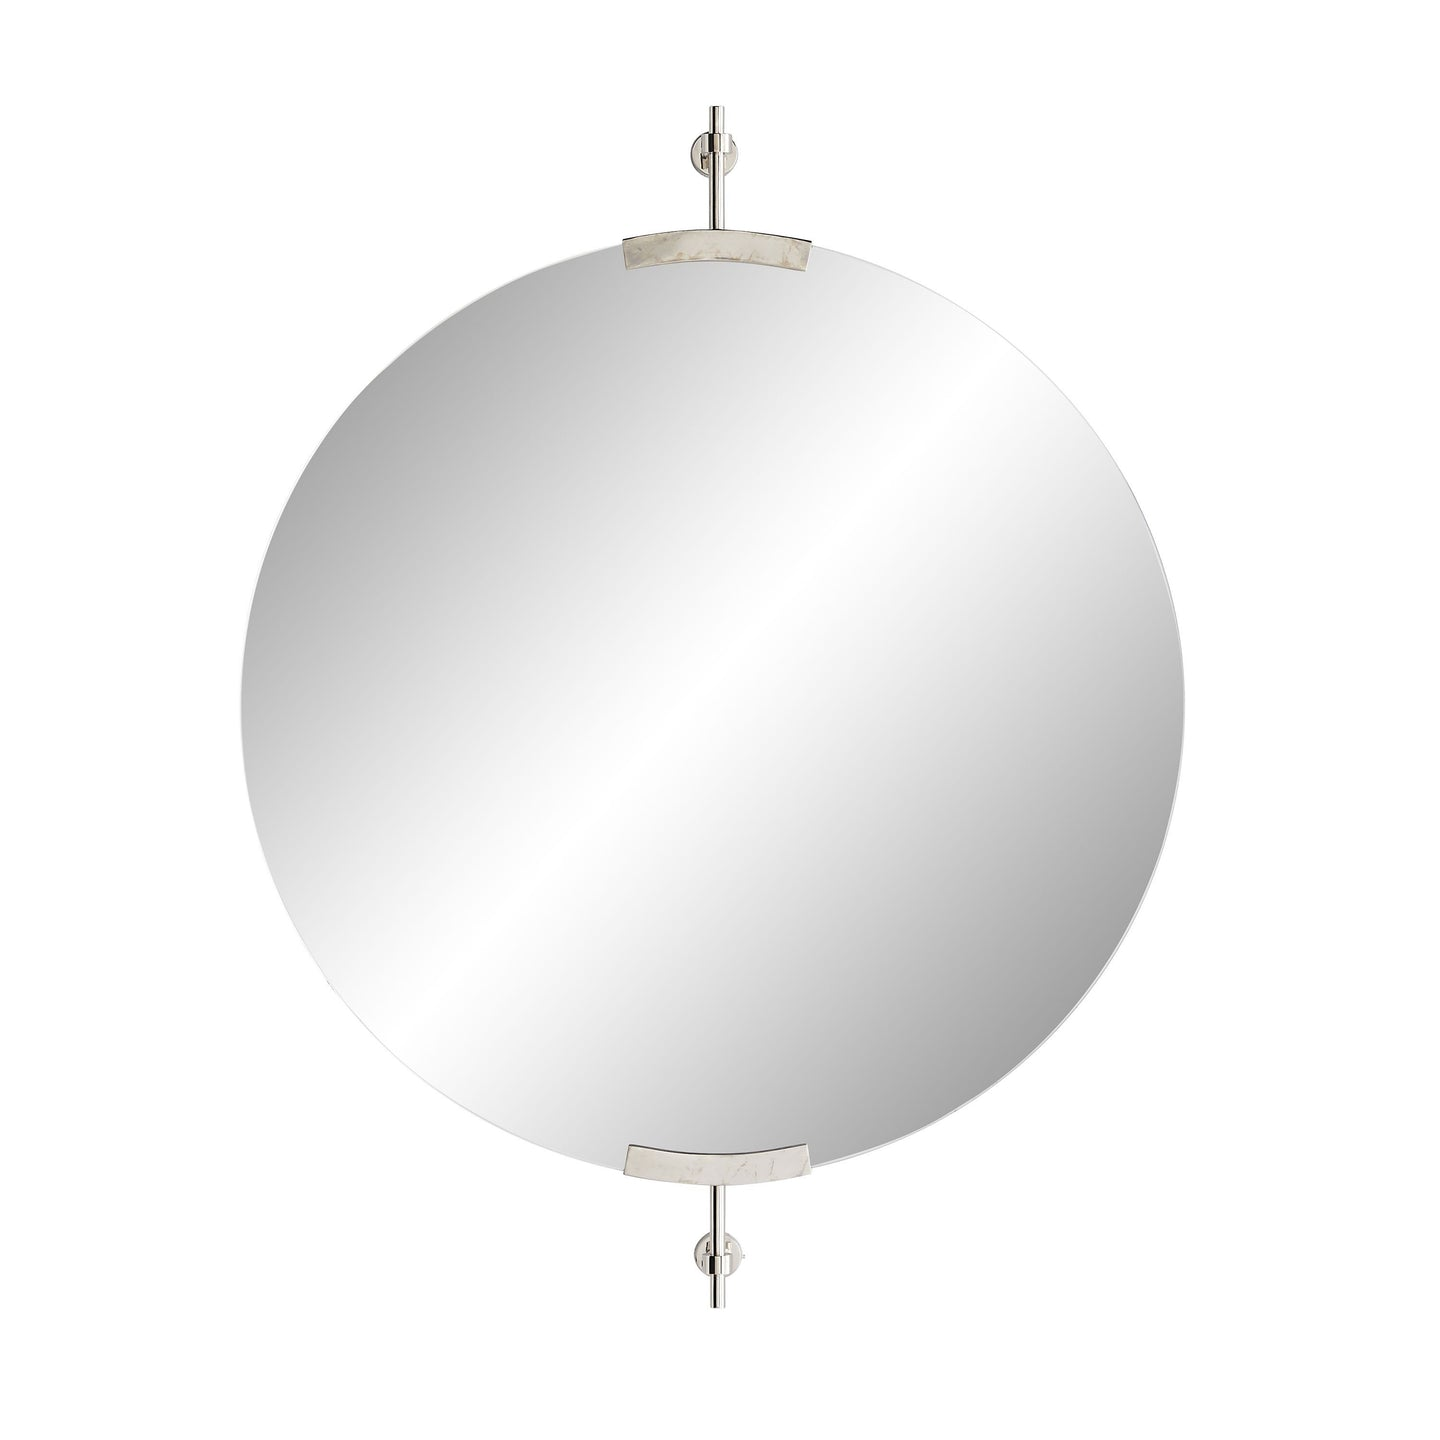 Madden Round Mirror - Polished Nickel